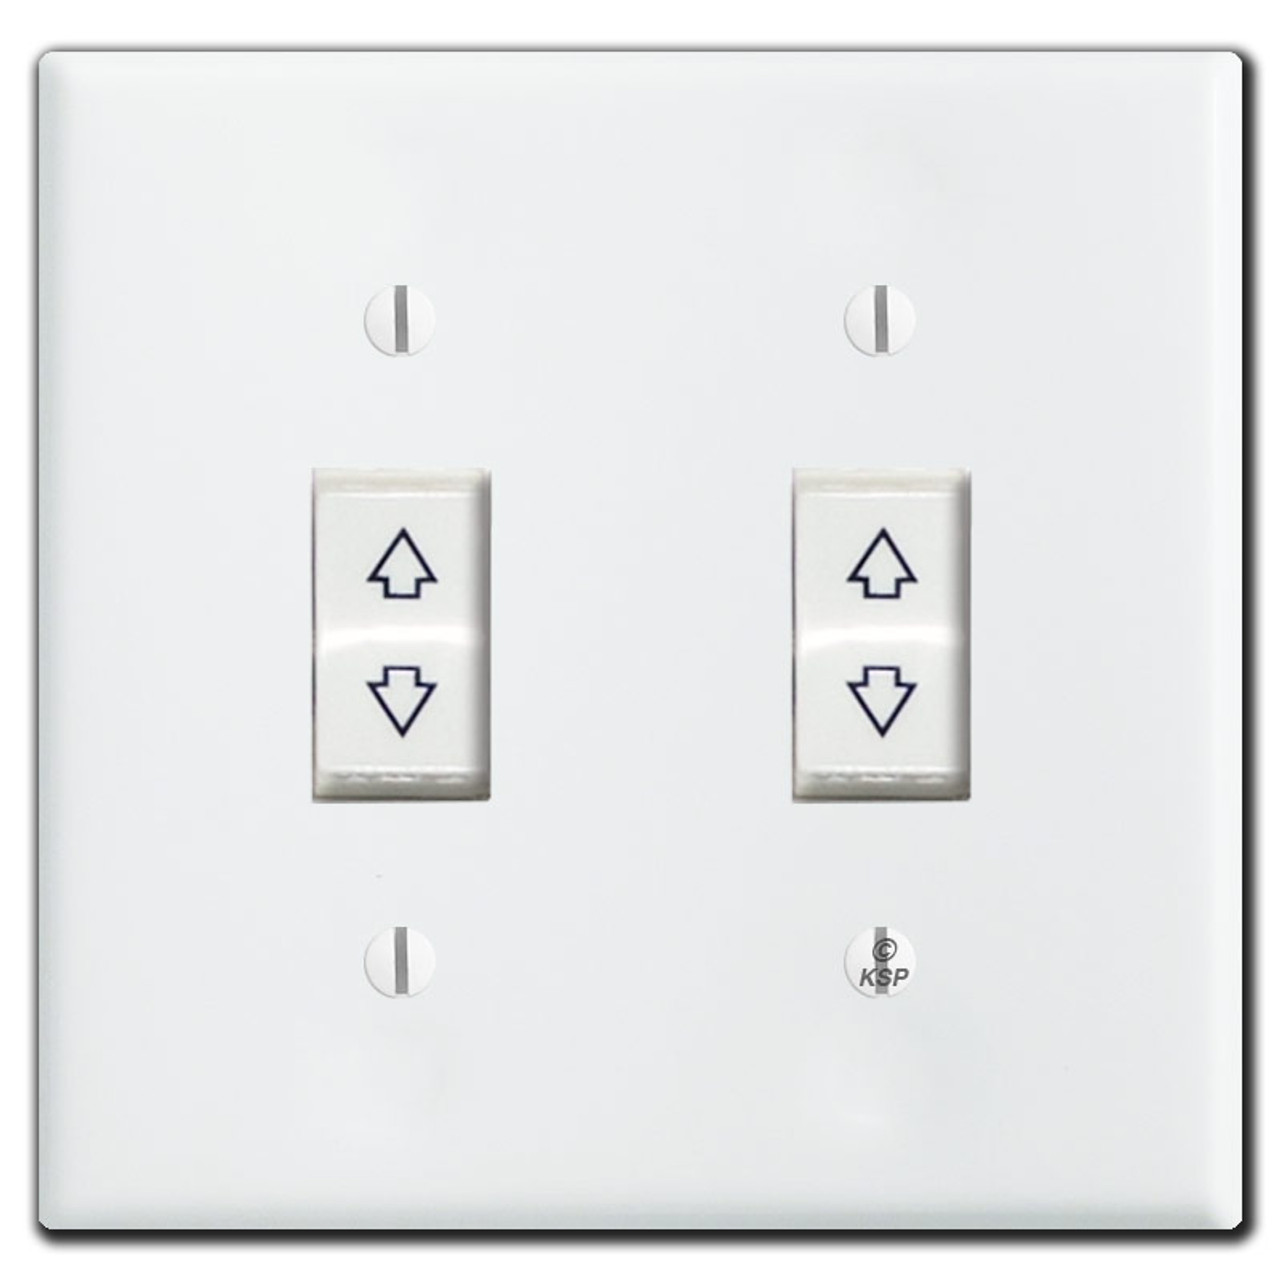 Somfy Motorized Blinds 2 Switch Wall Plate Covers